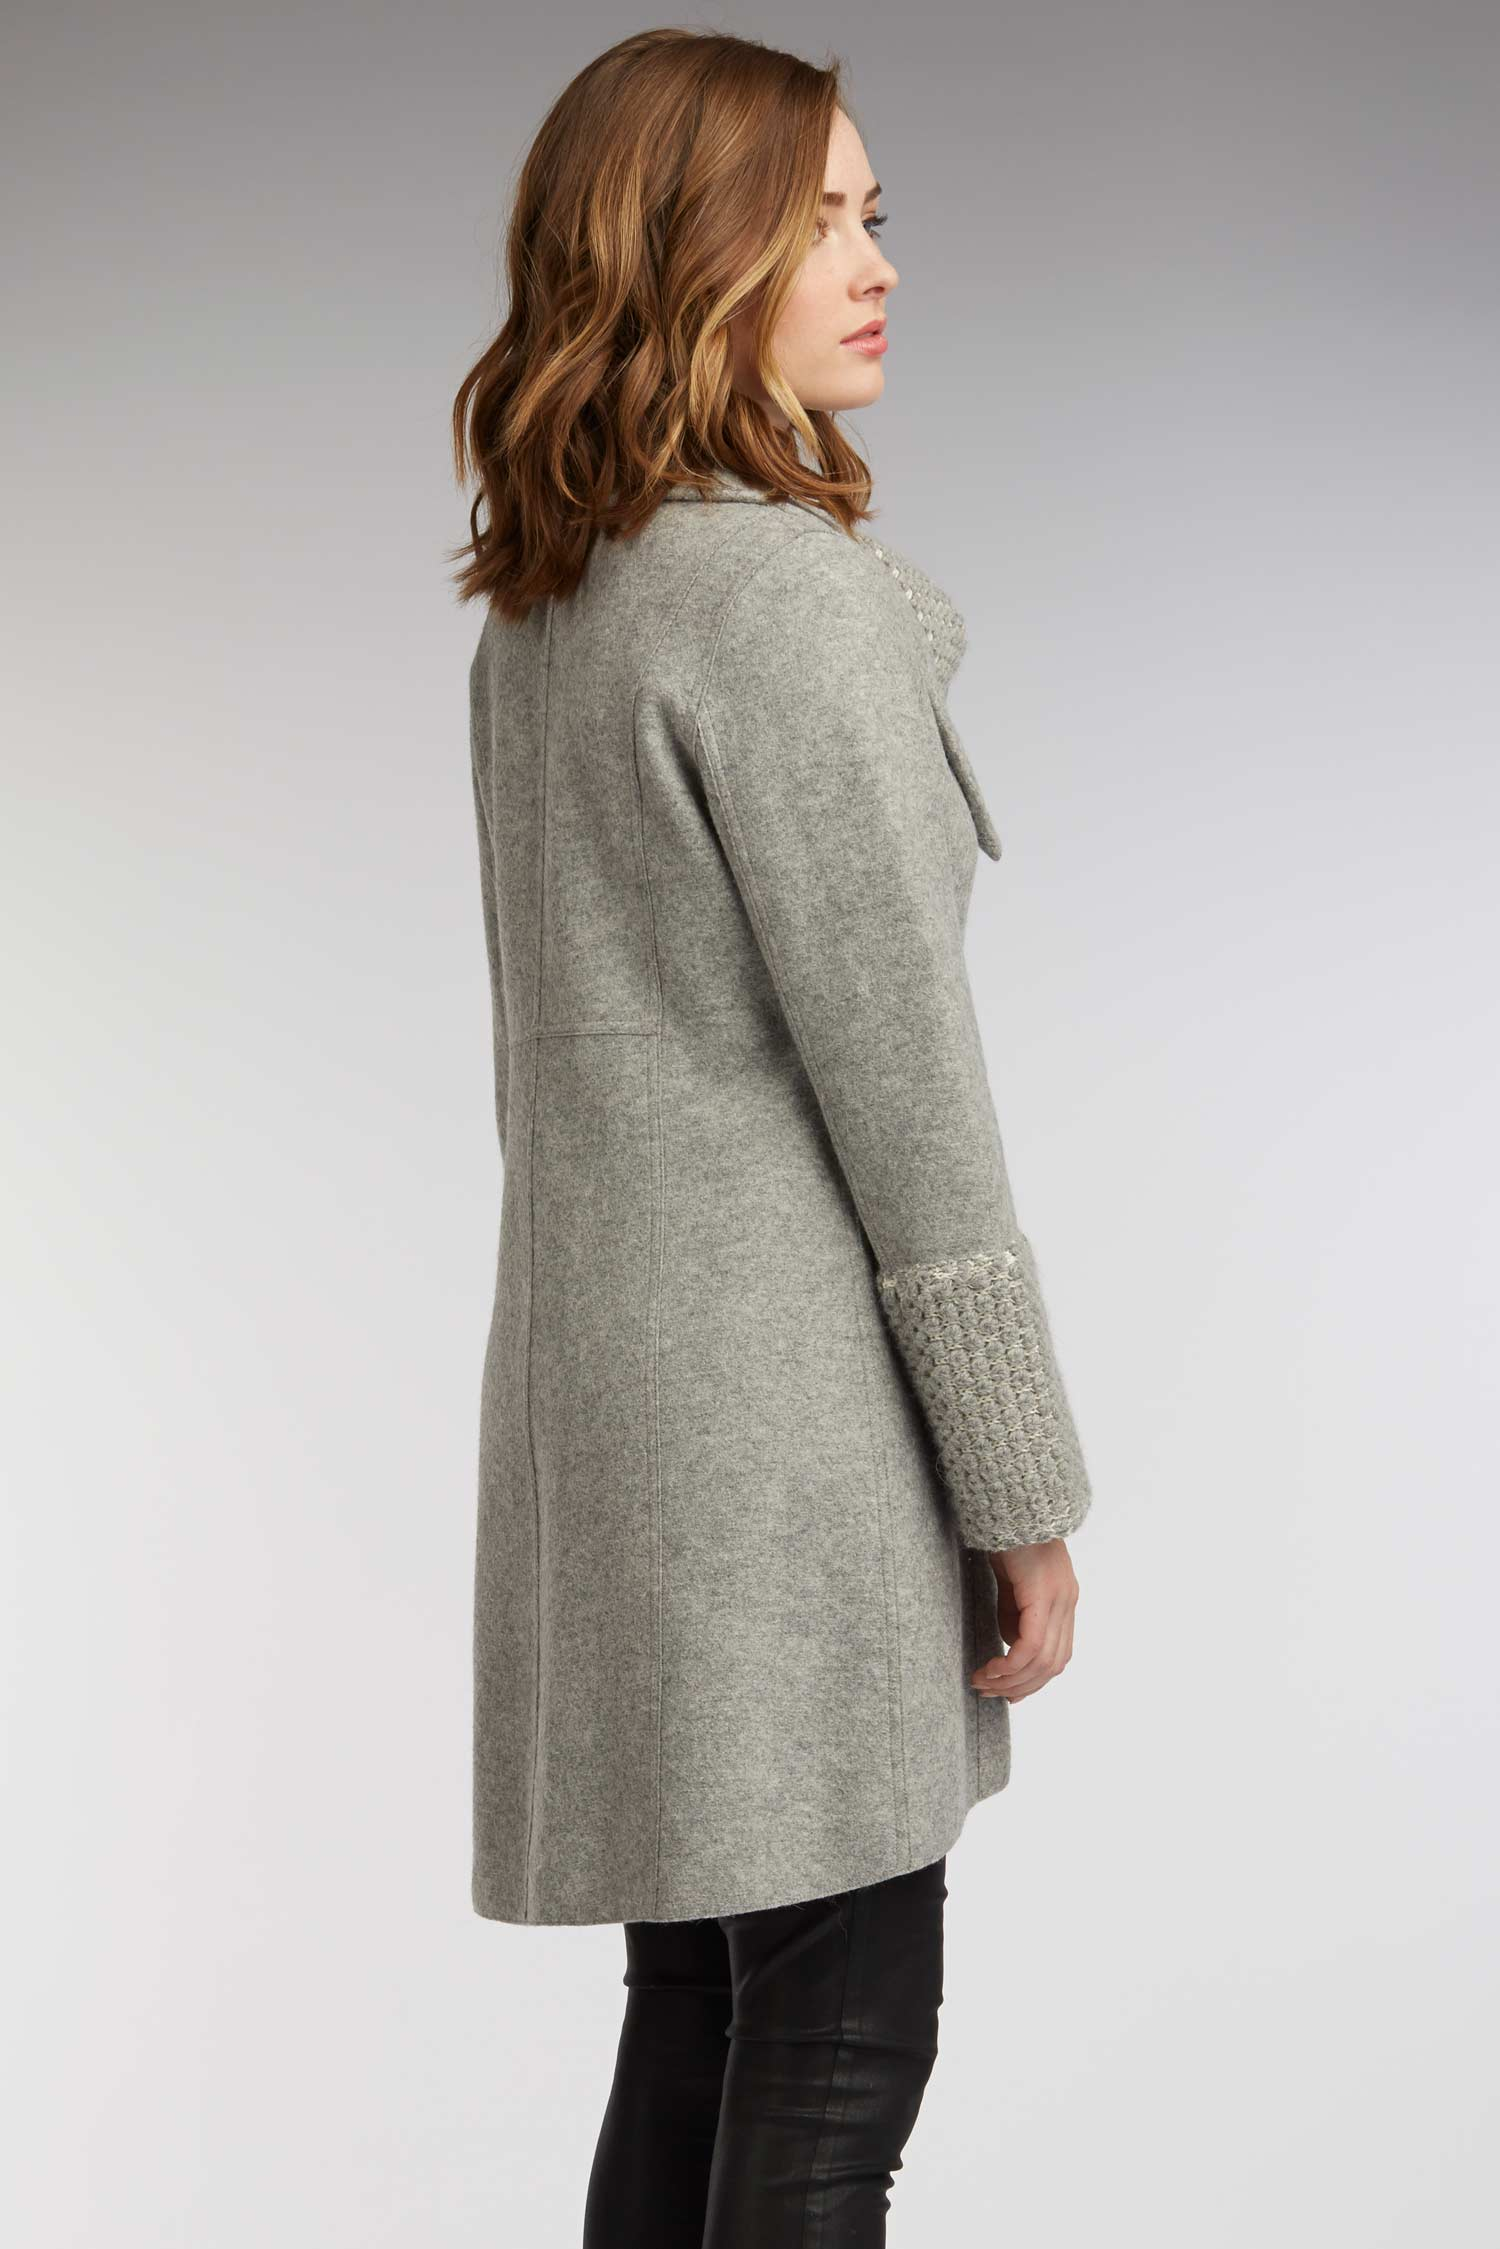 Womens Alpaca Winter Coat in Gray | Ethical Fashion